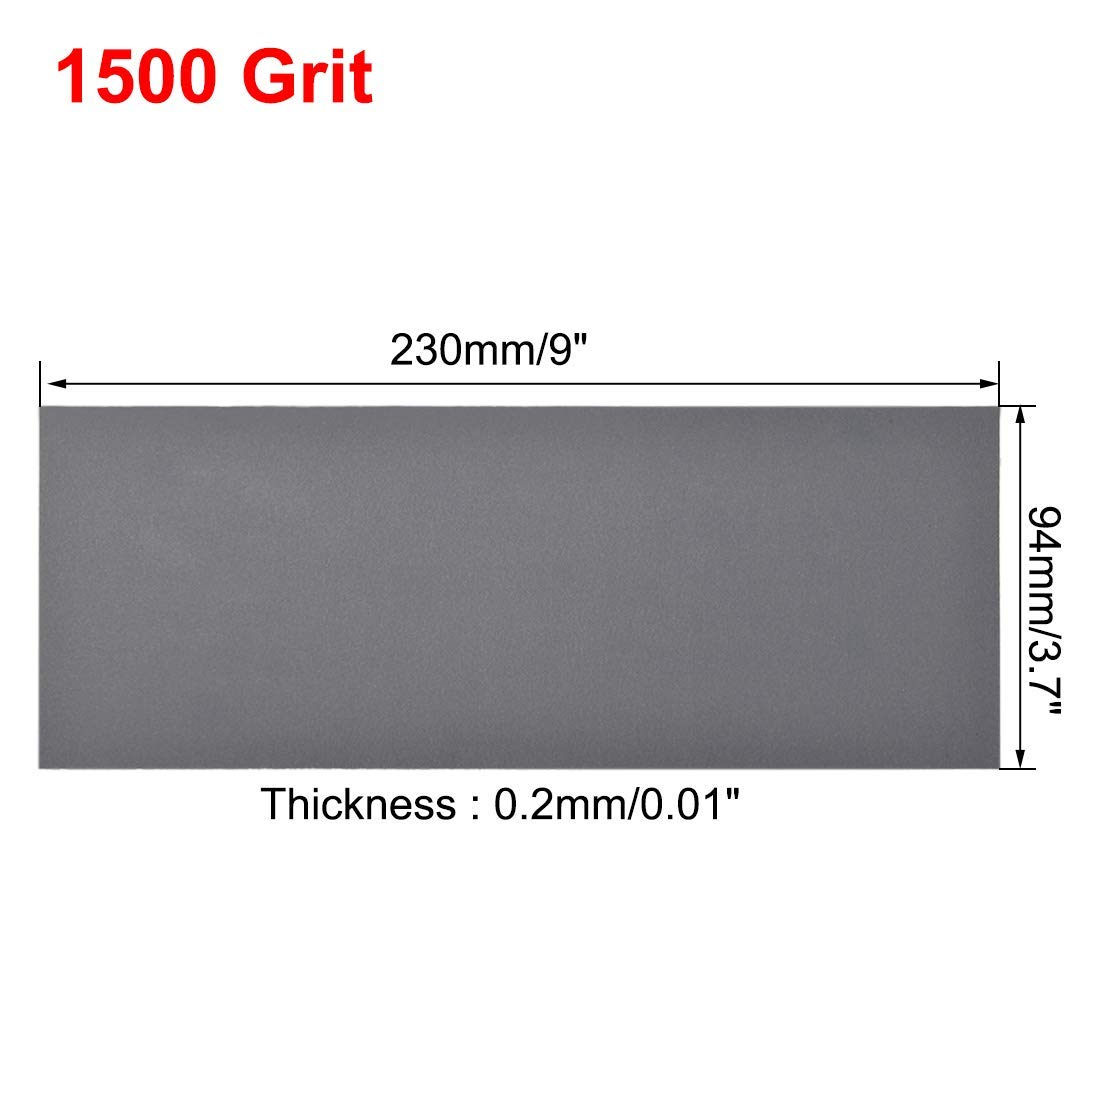 1500 grain sanding sheets 9 inches x 3.6 inches Dry and wet silicon carbide sandpaper for wood furniture Metal Automotive polishing 15 pieces